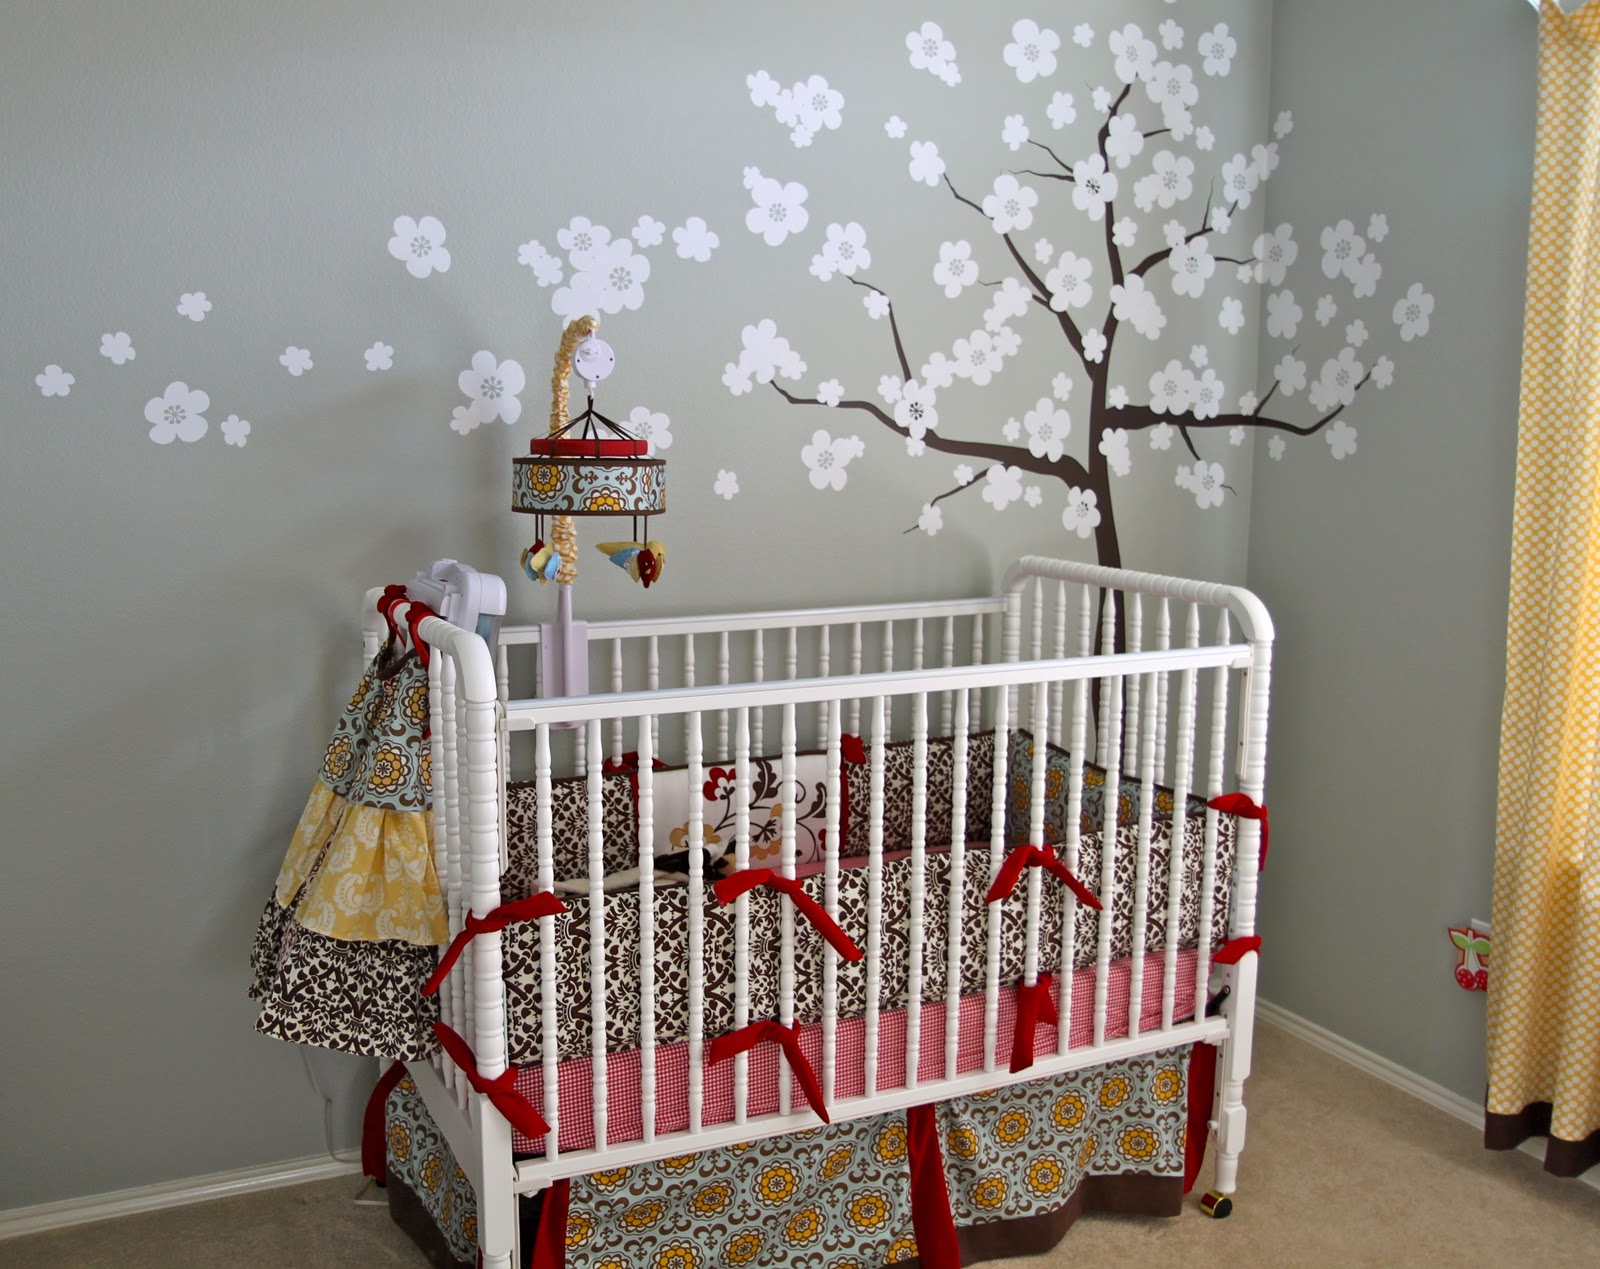 Baby nursery it 39 s quirky and so cute design dazzle for Babies decoration room